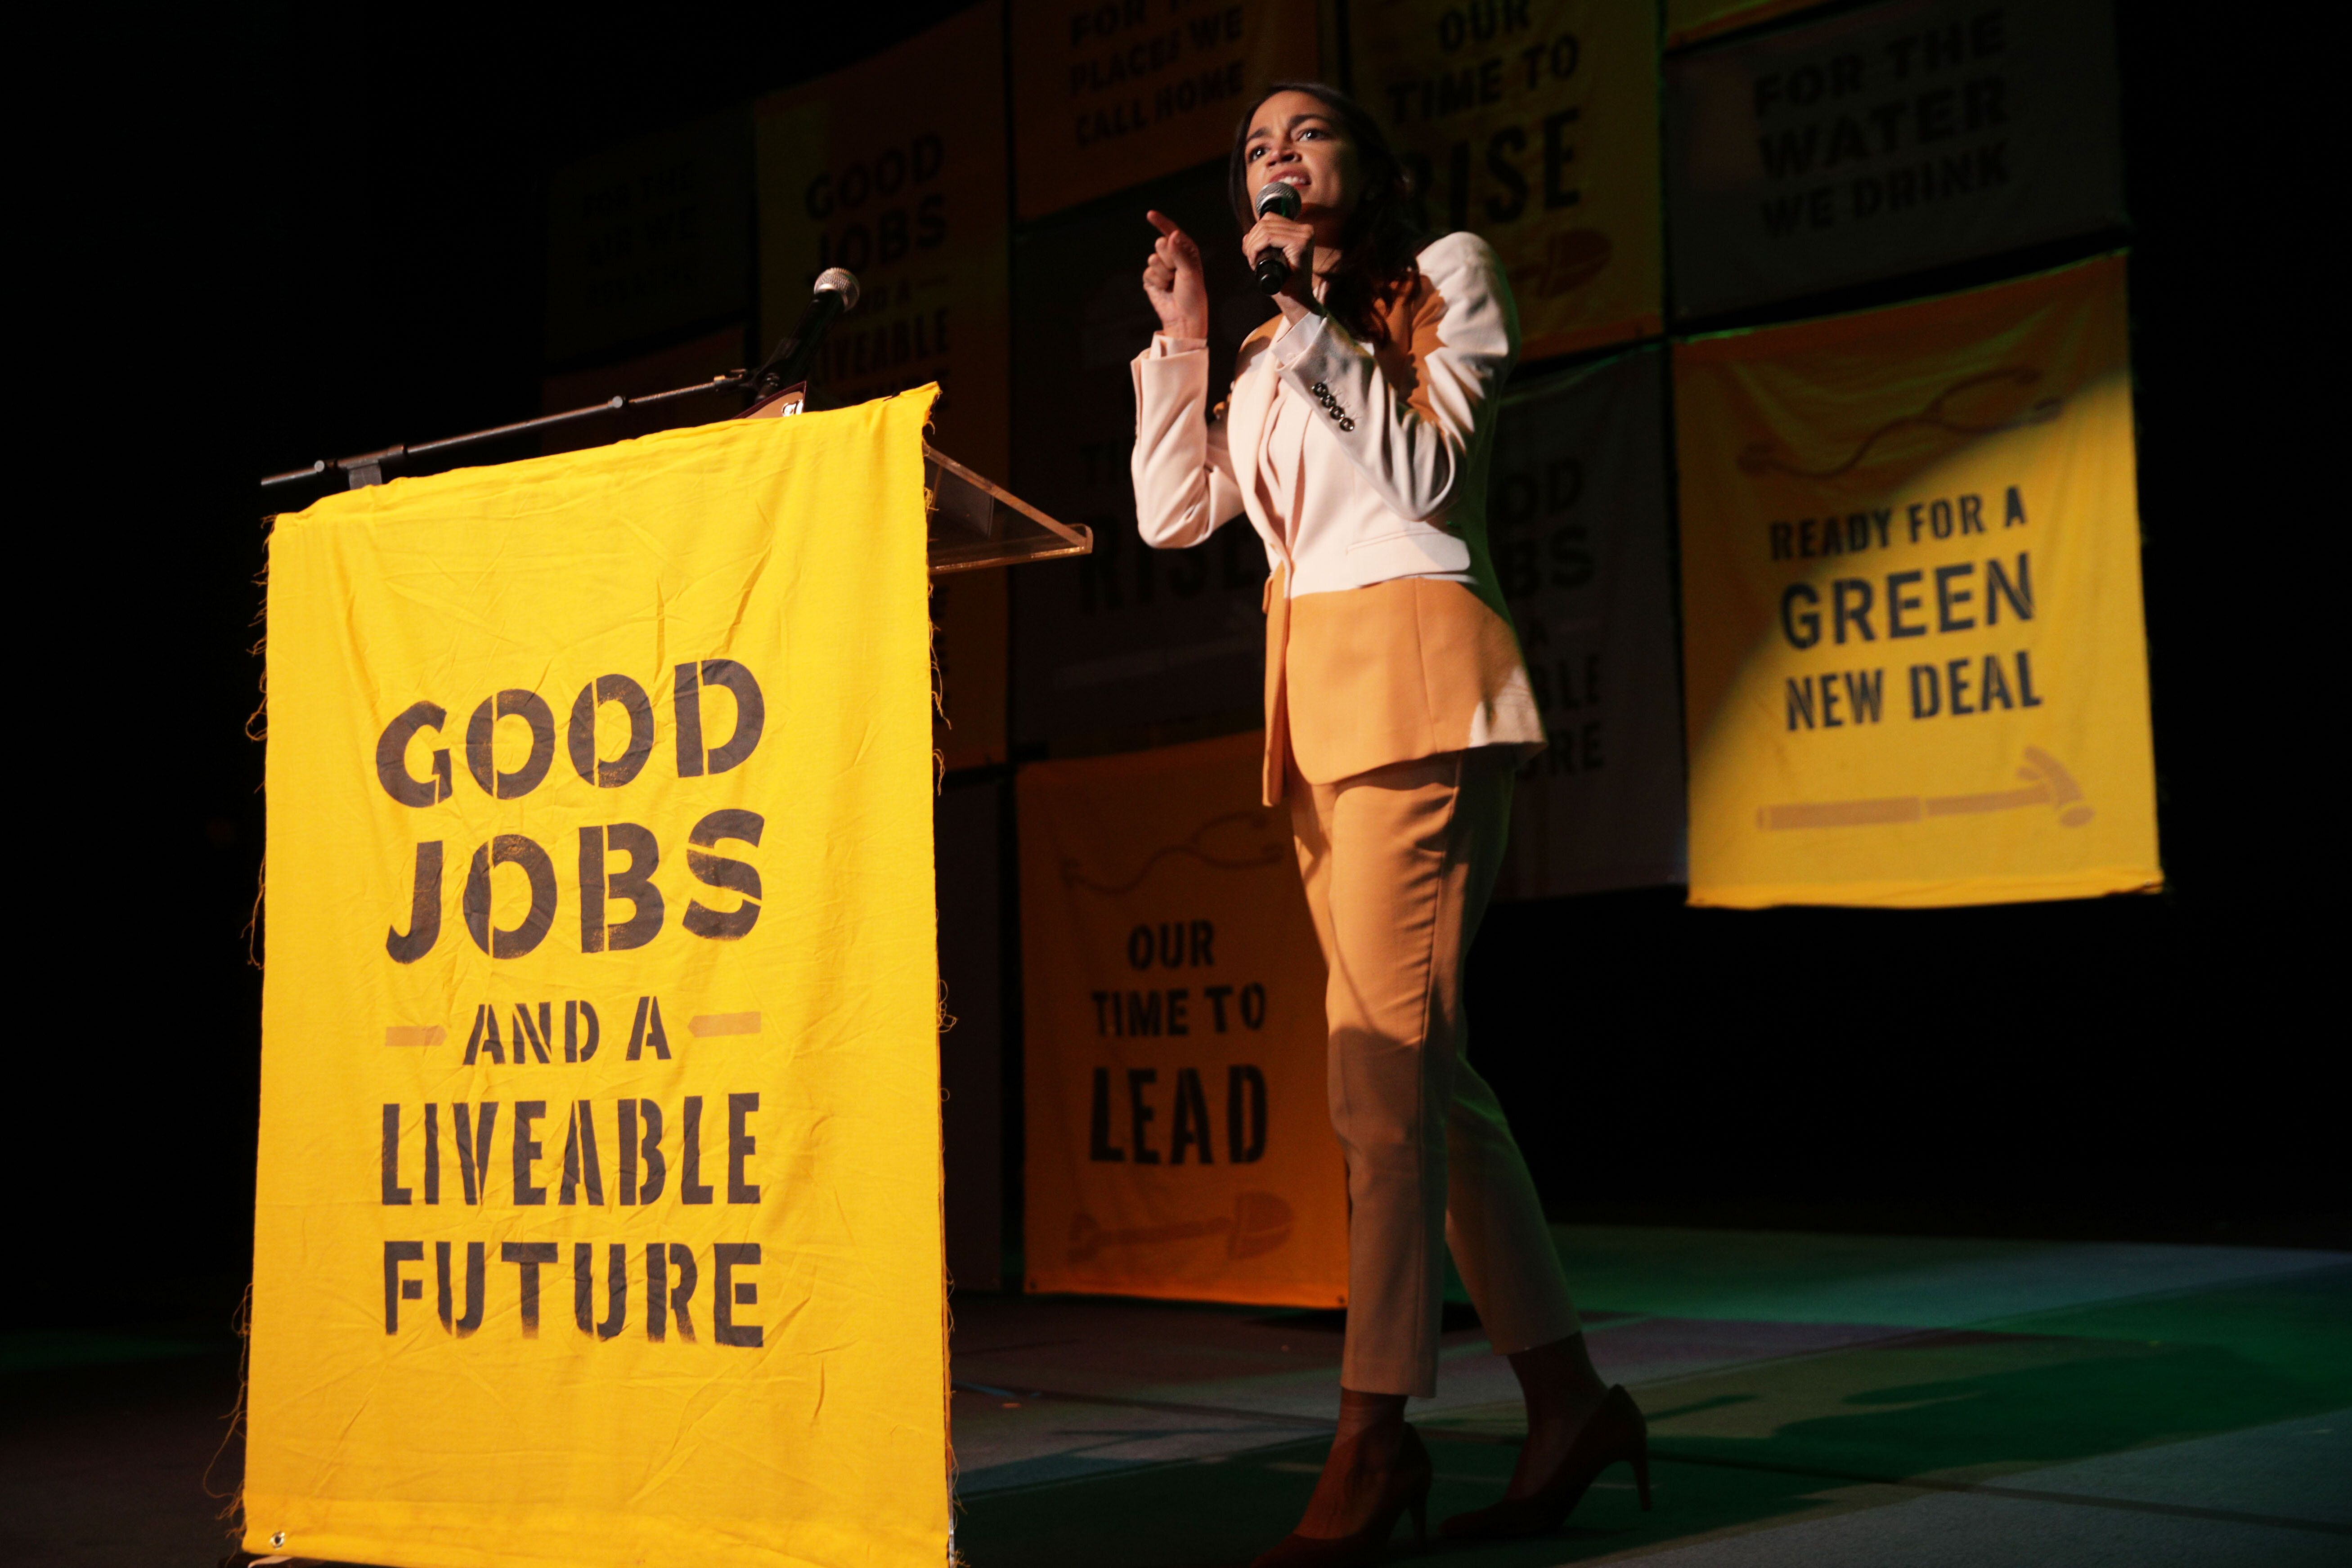 """Rep. Alexandria Ocasio-Cortez (D-N.Y.) speaks at a Green New Deal rally in May, calling for """"good jobs"""" and a safe climate.&n"""